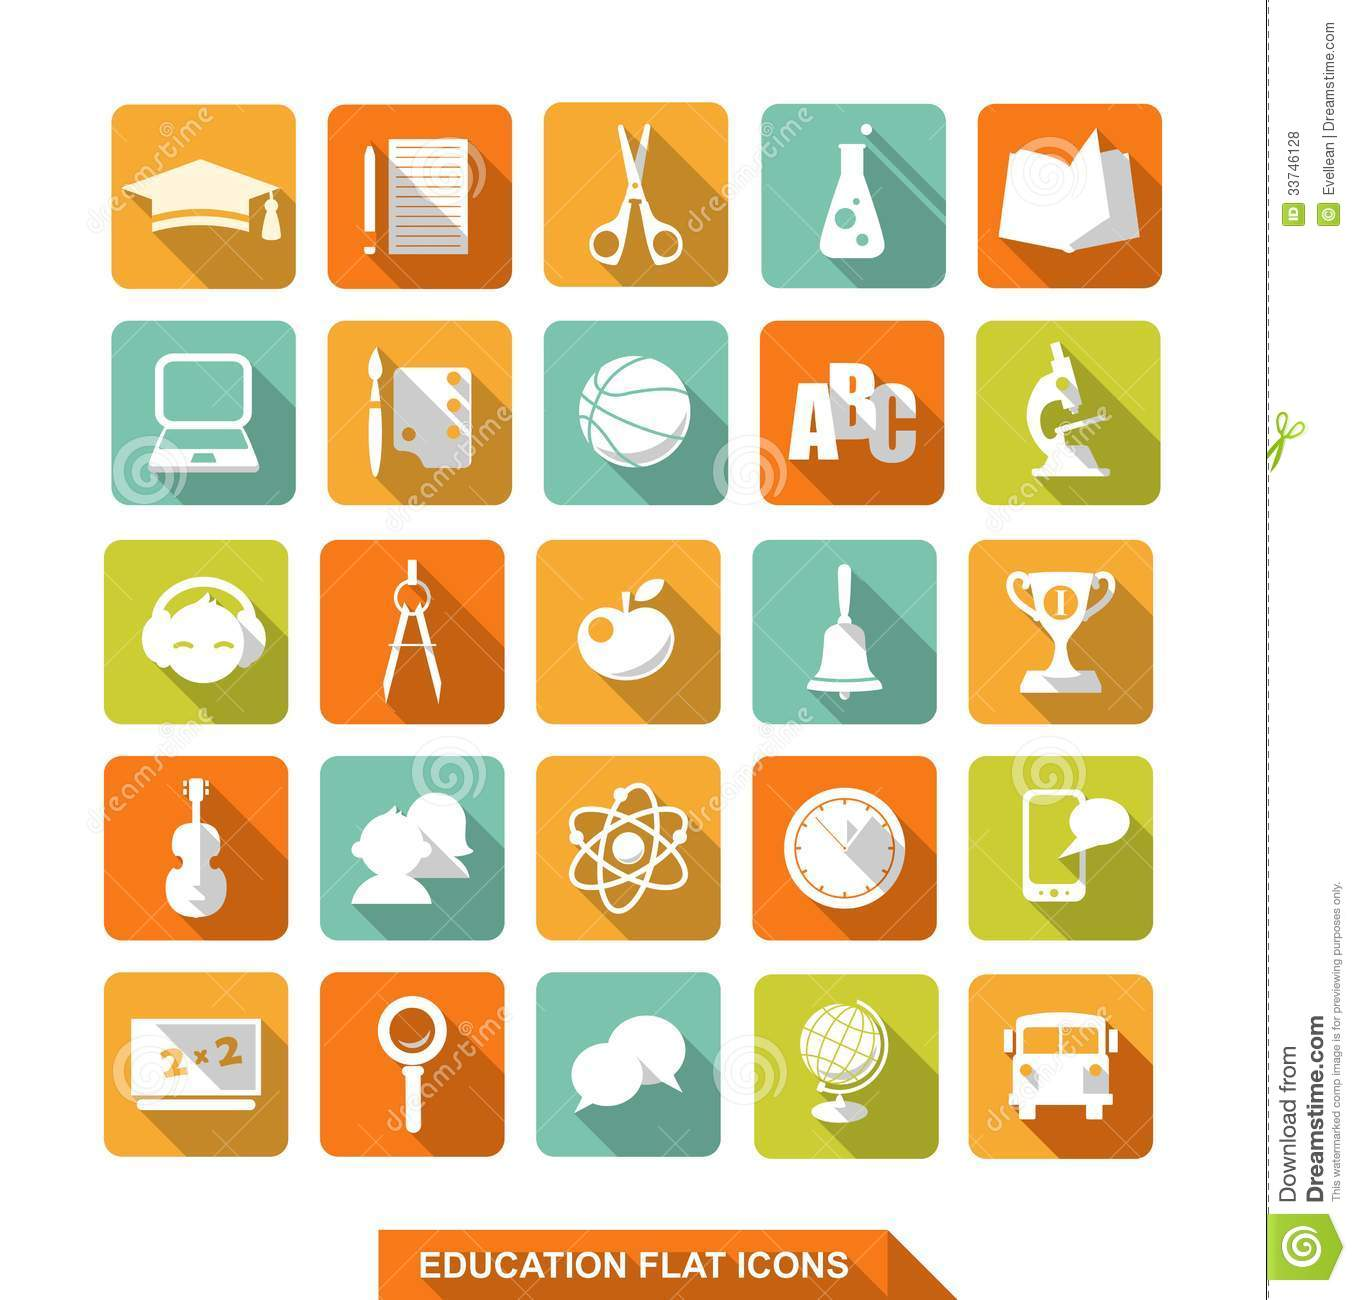 Flat Education Icons With Shadow Royalty Free Stock Photos - Image ...